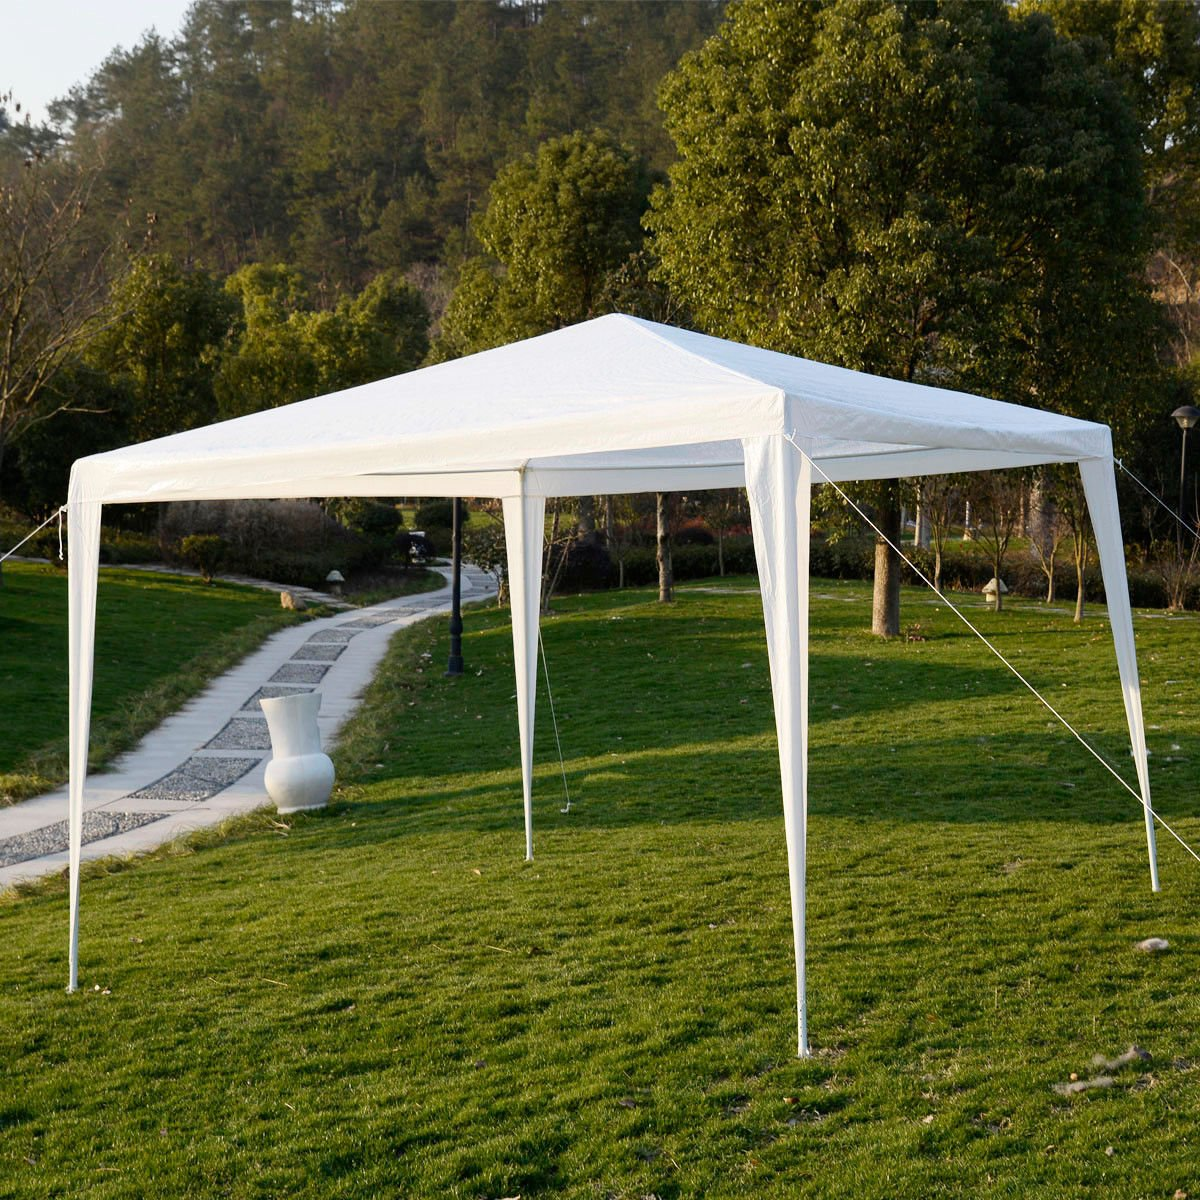 Amazon.com  10u0027x10u0027Outdoor Canopy Party Wedding Tent Garden Gazebo Pavilion Cater Events (White)  Garden u0026 Outdoor & Amazon.com : 10u0027x10u0027Outdoor Canopy Party Wedding Tent Garden ...